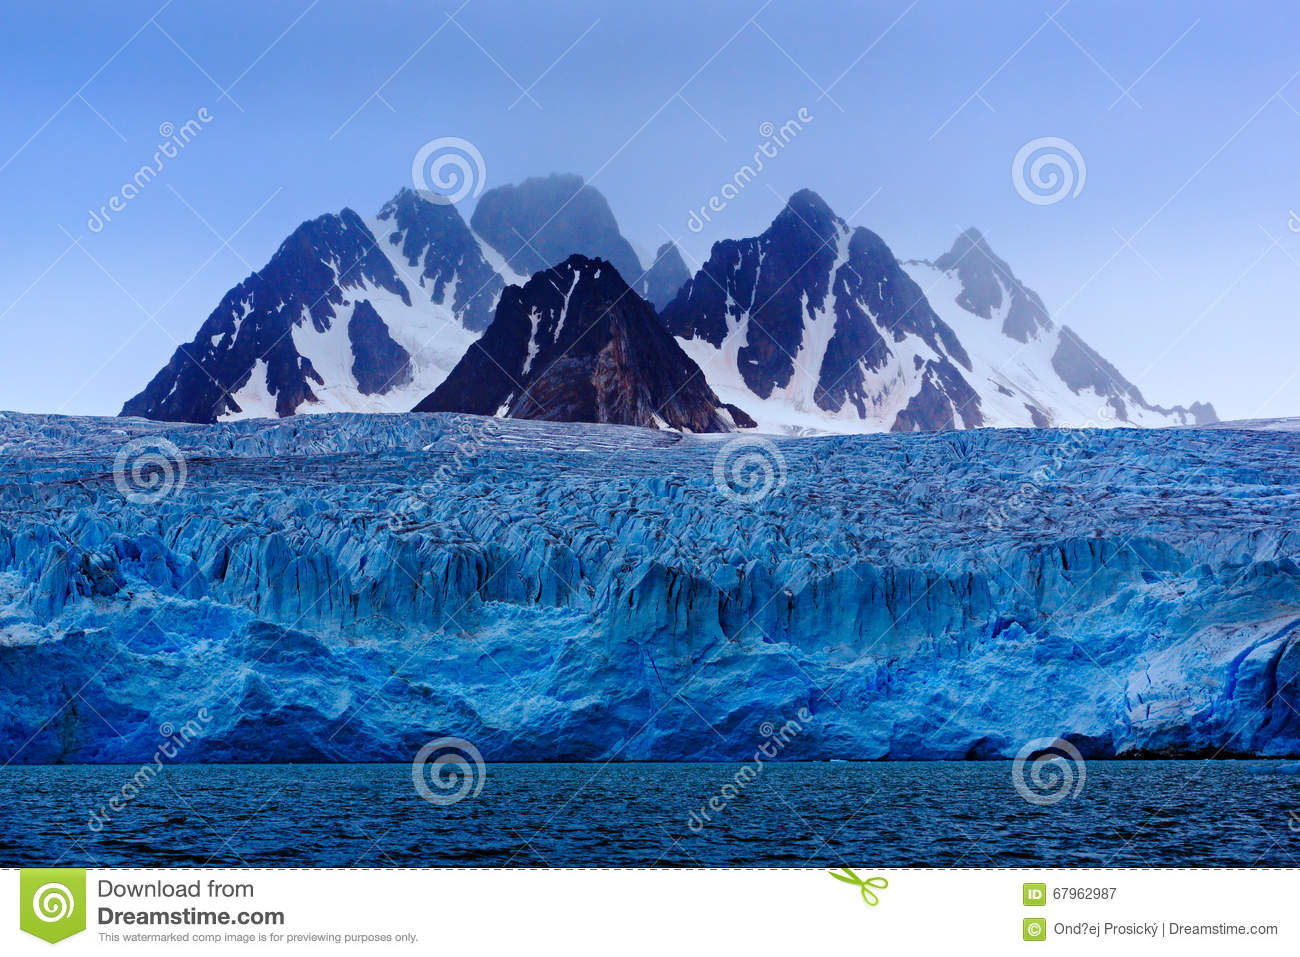 Dark winter mountain with snow, blue glacier ice with sea in the foreground, Svalbard, Norway, Europe